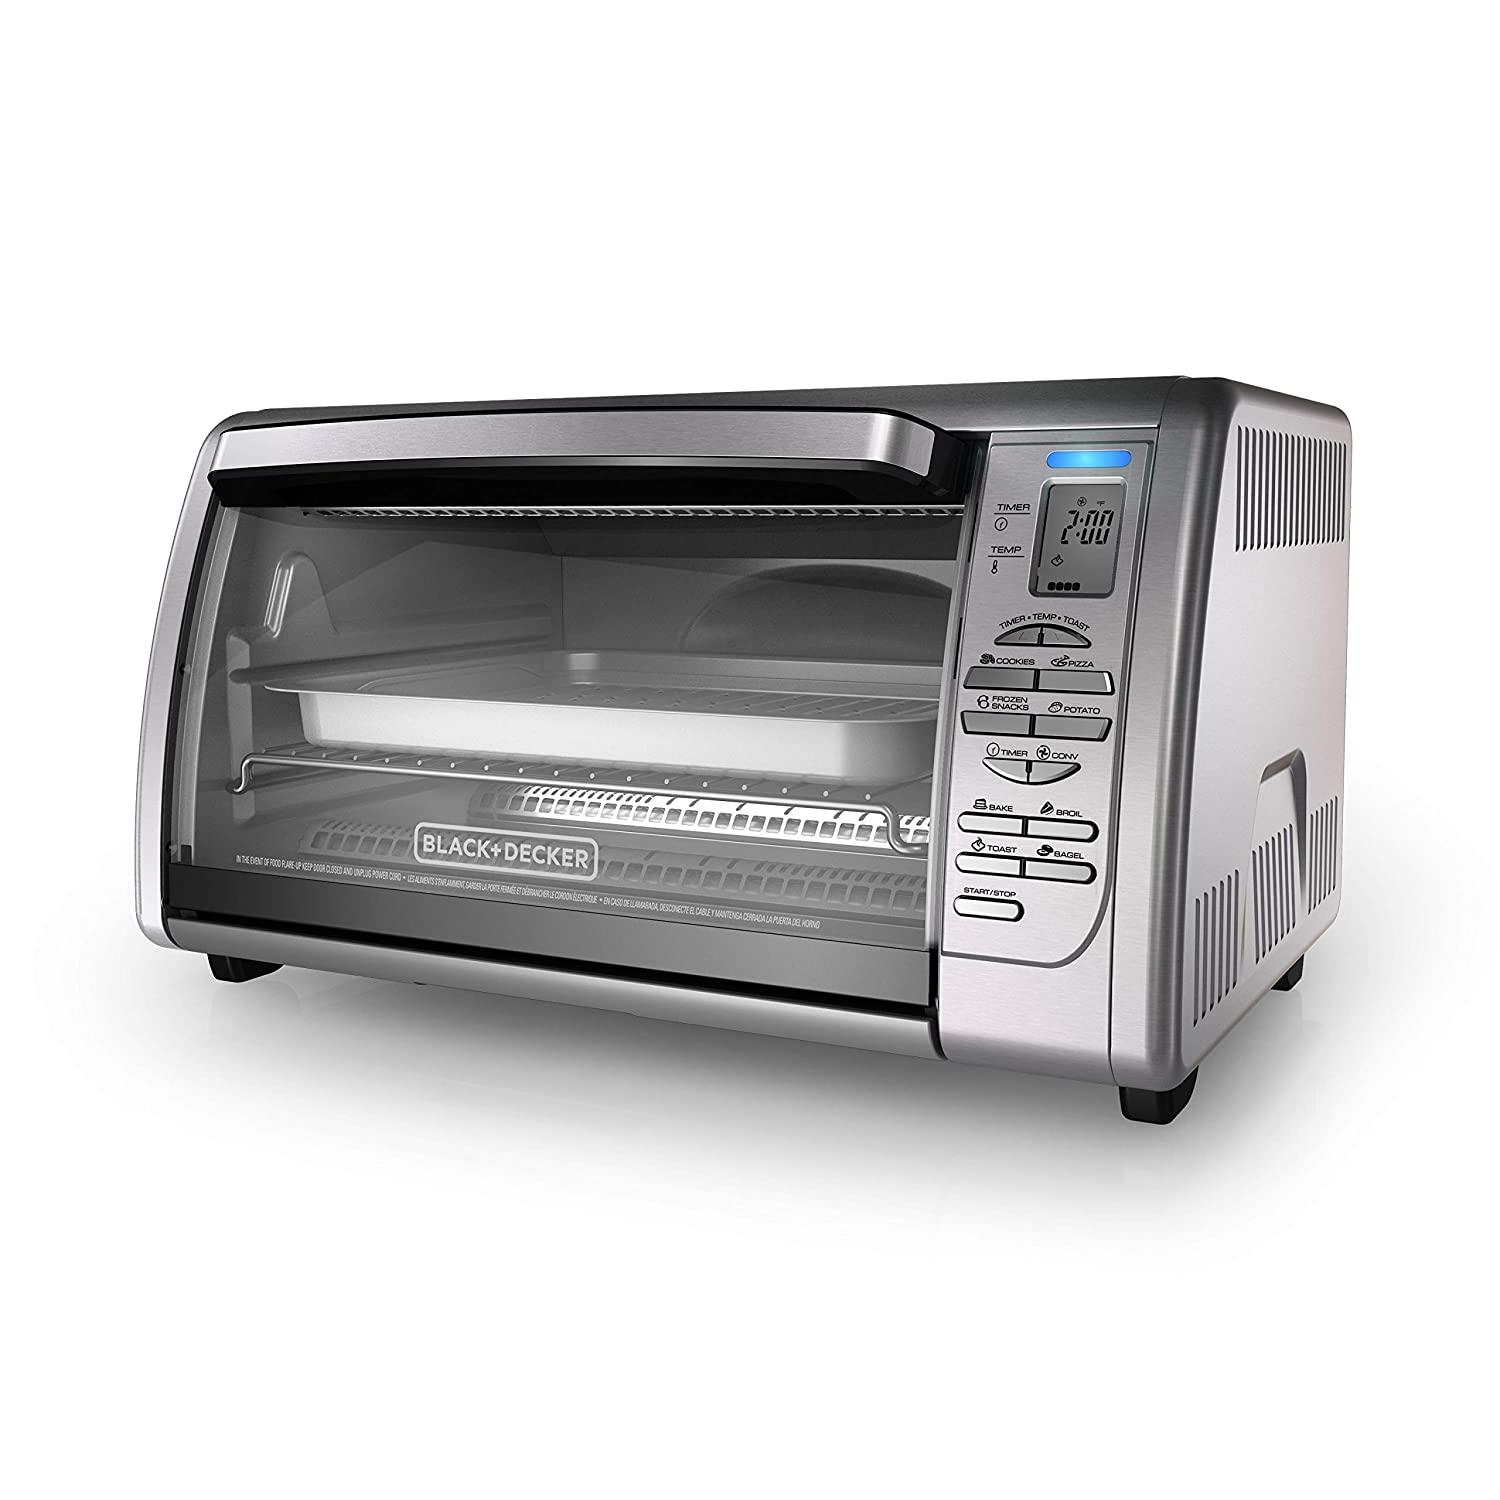 20 Best Convection Toaster Oven 2019 2020 Reviews